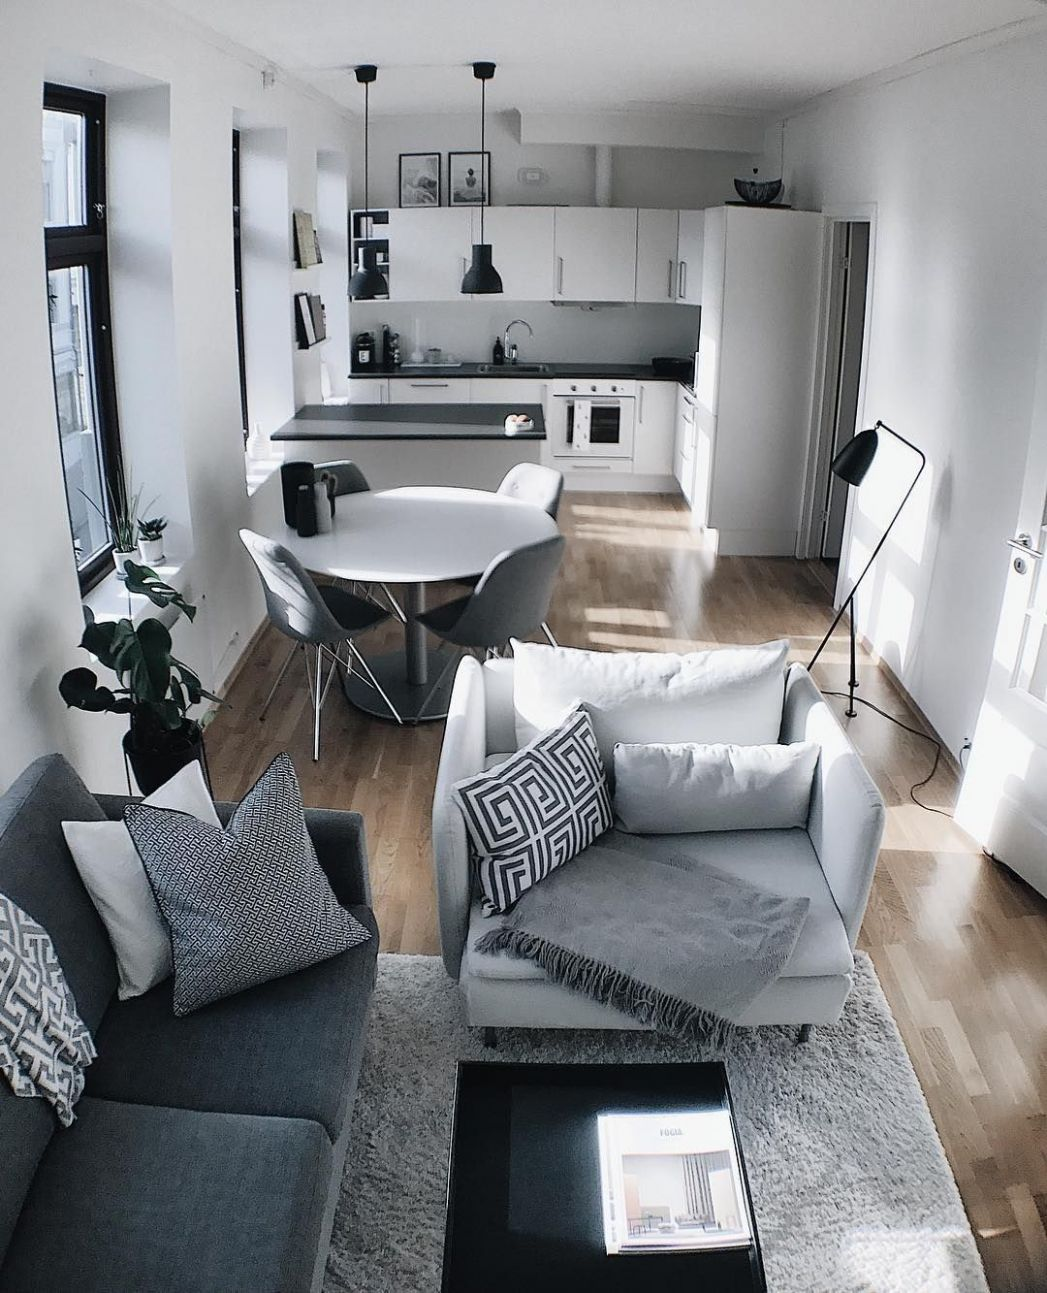 9 Apartment Decorating Ideas On a Budget For a Beautiful Space ..